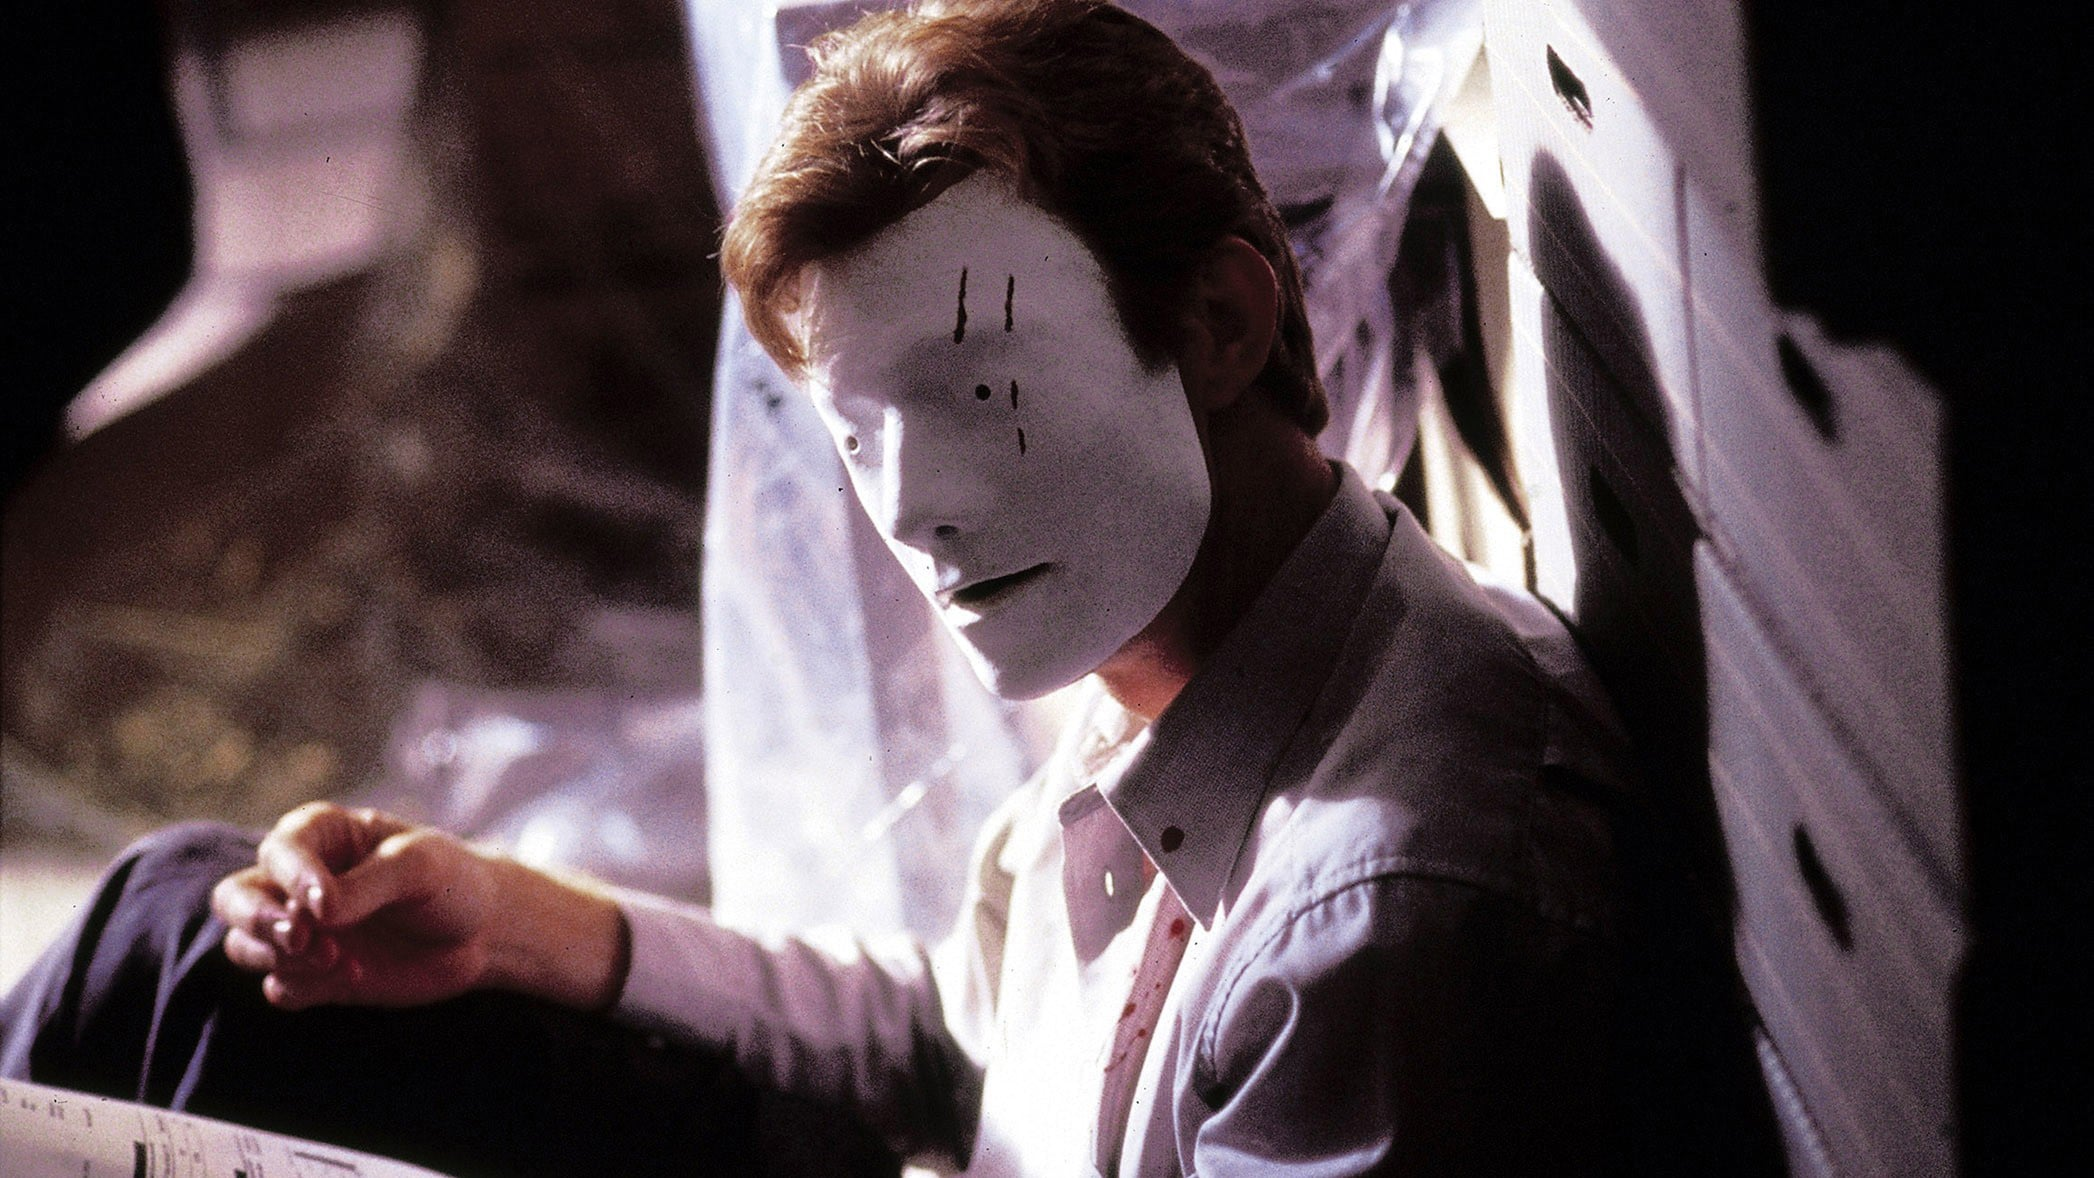 Jason Flemyng wakes up wearing a blank white face mask in Bruiser (2000)